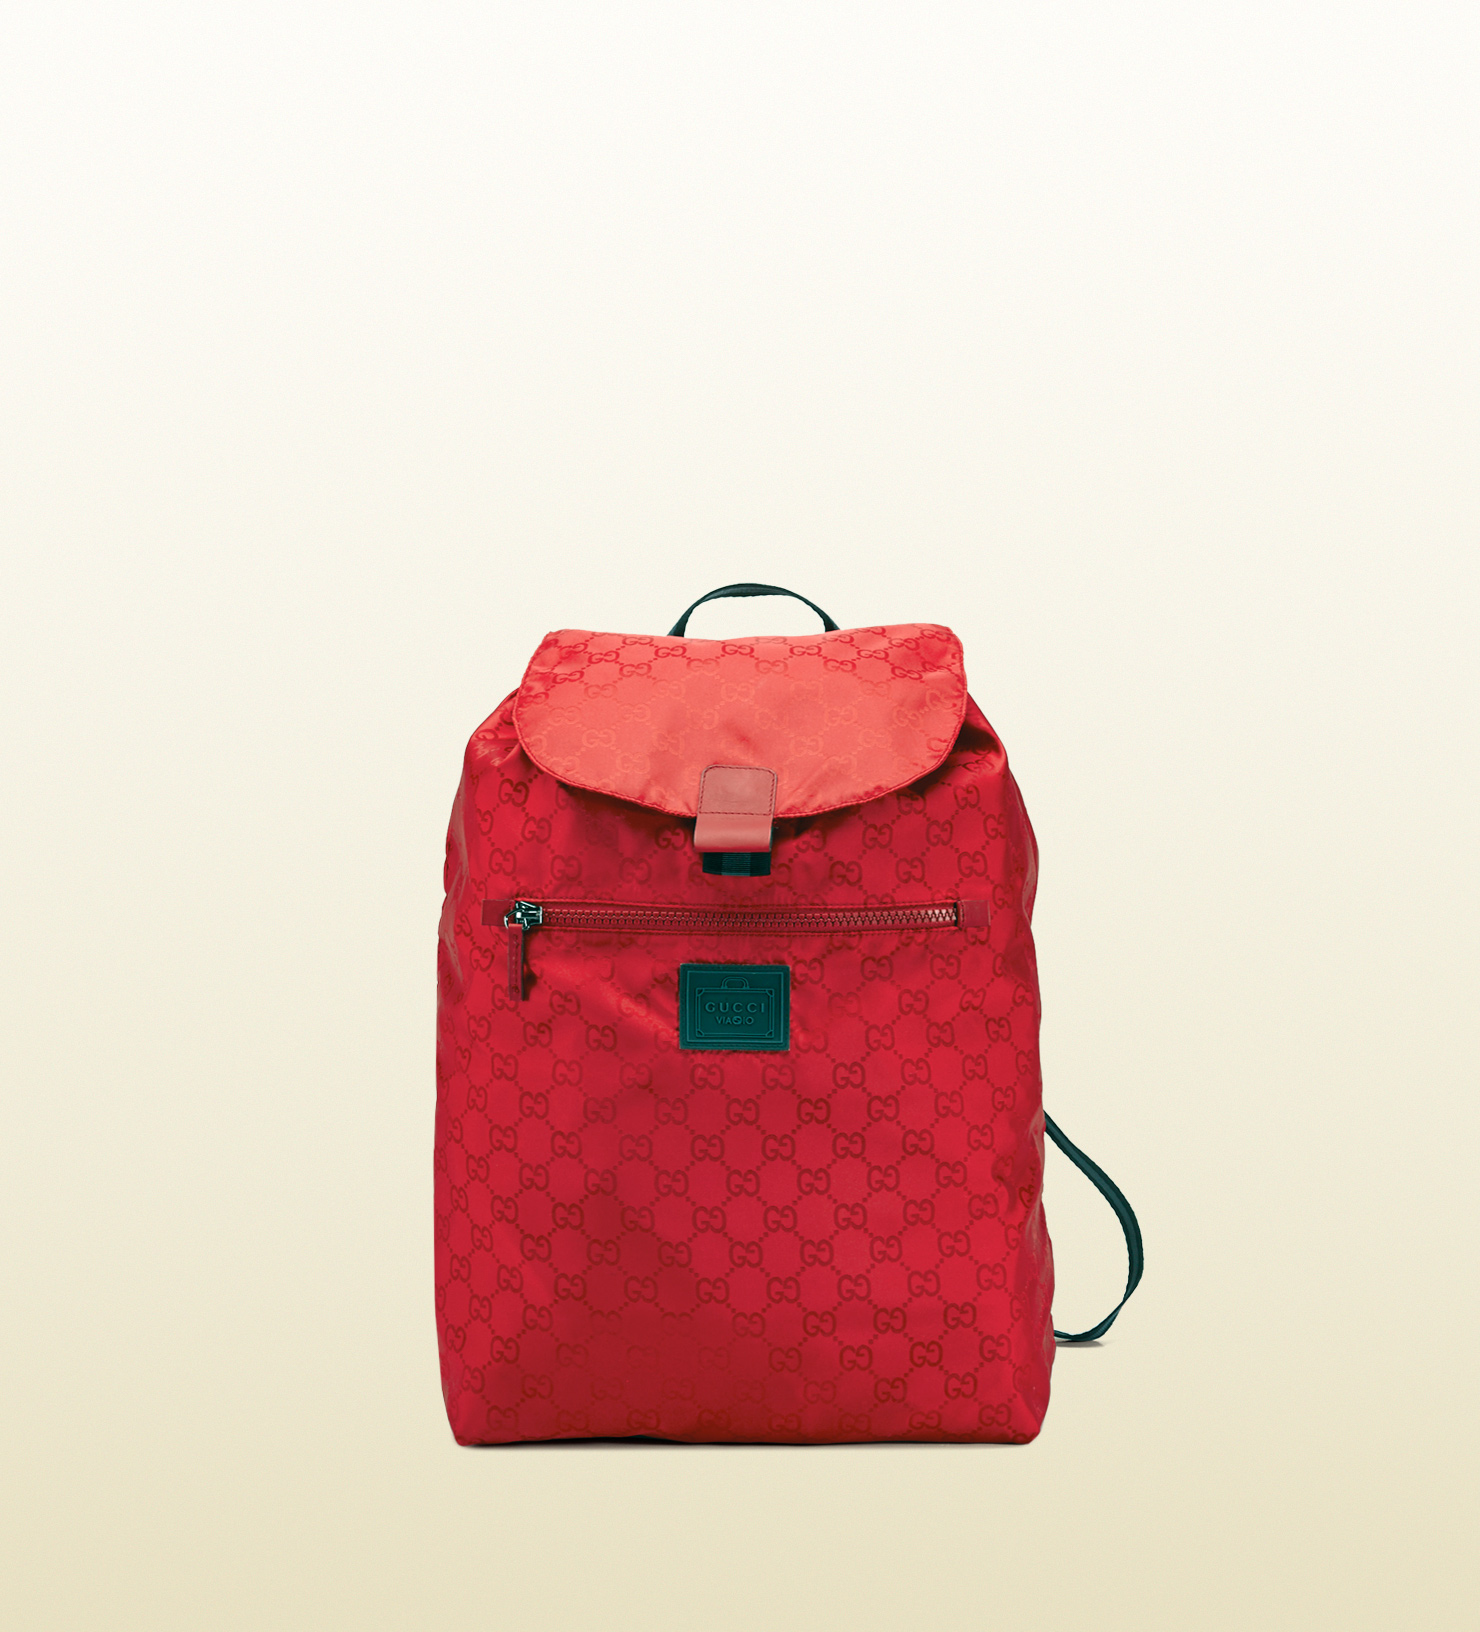 db9af77549 Gucci Gg Nylon Backpack From The Viaggio Collection in Red for Men ...